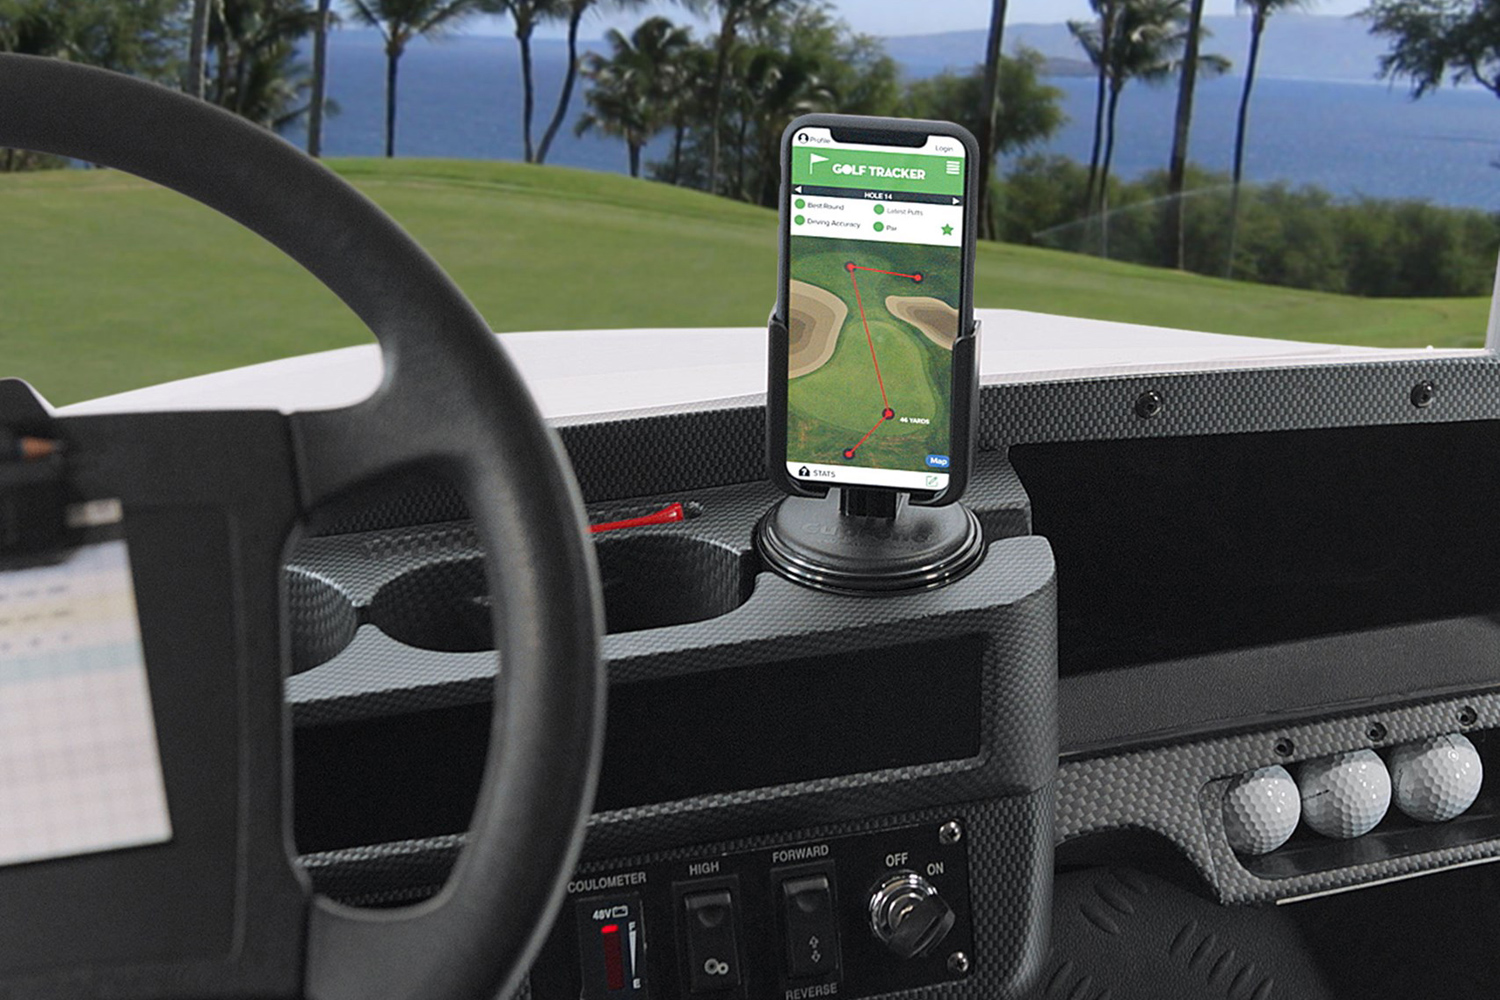 Weathertech Cup Phone Cell Phone Holder For Your Car